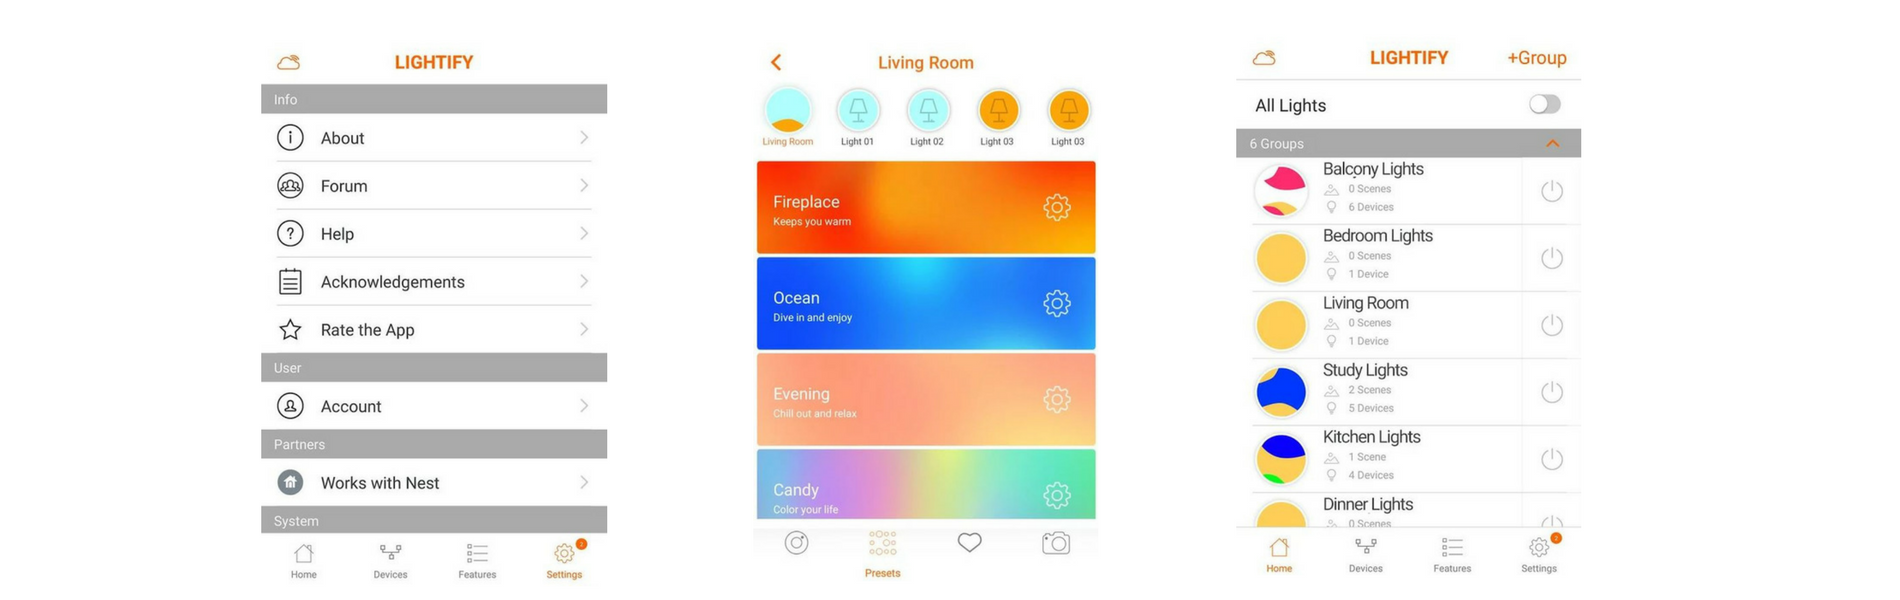 Lightify app